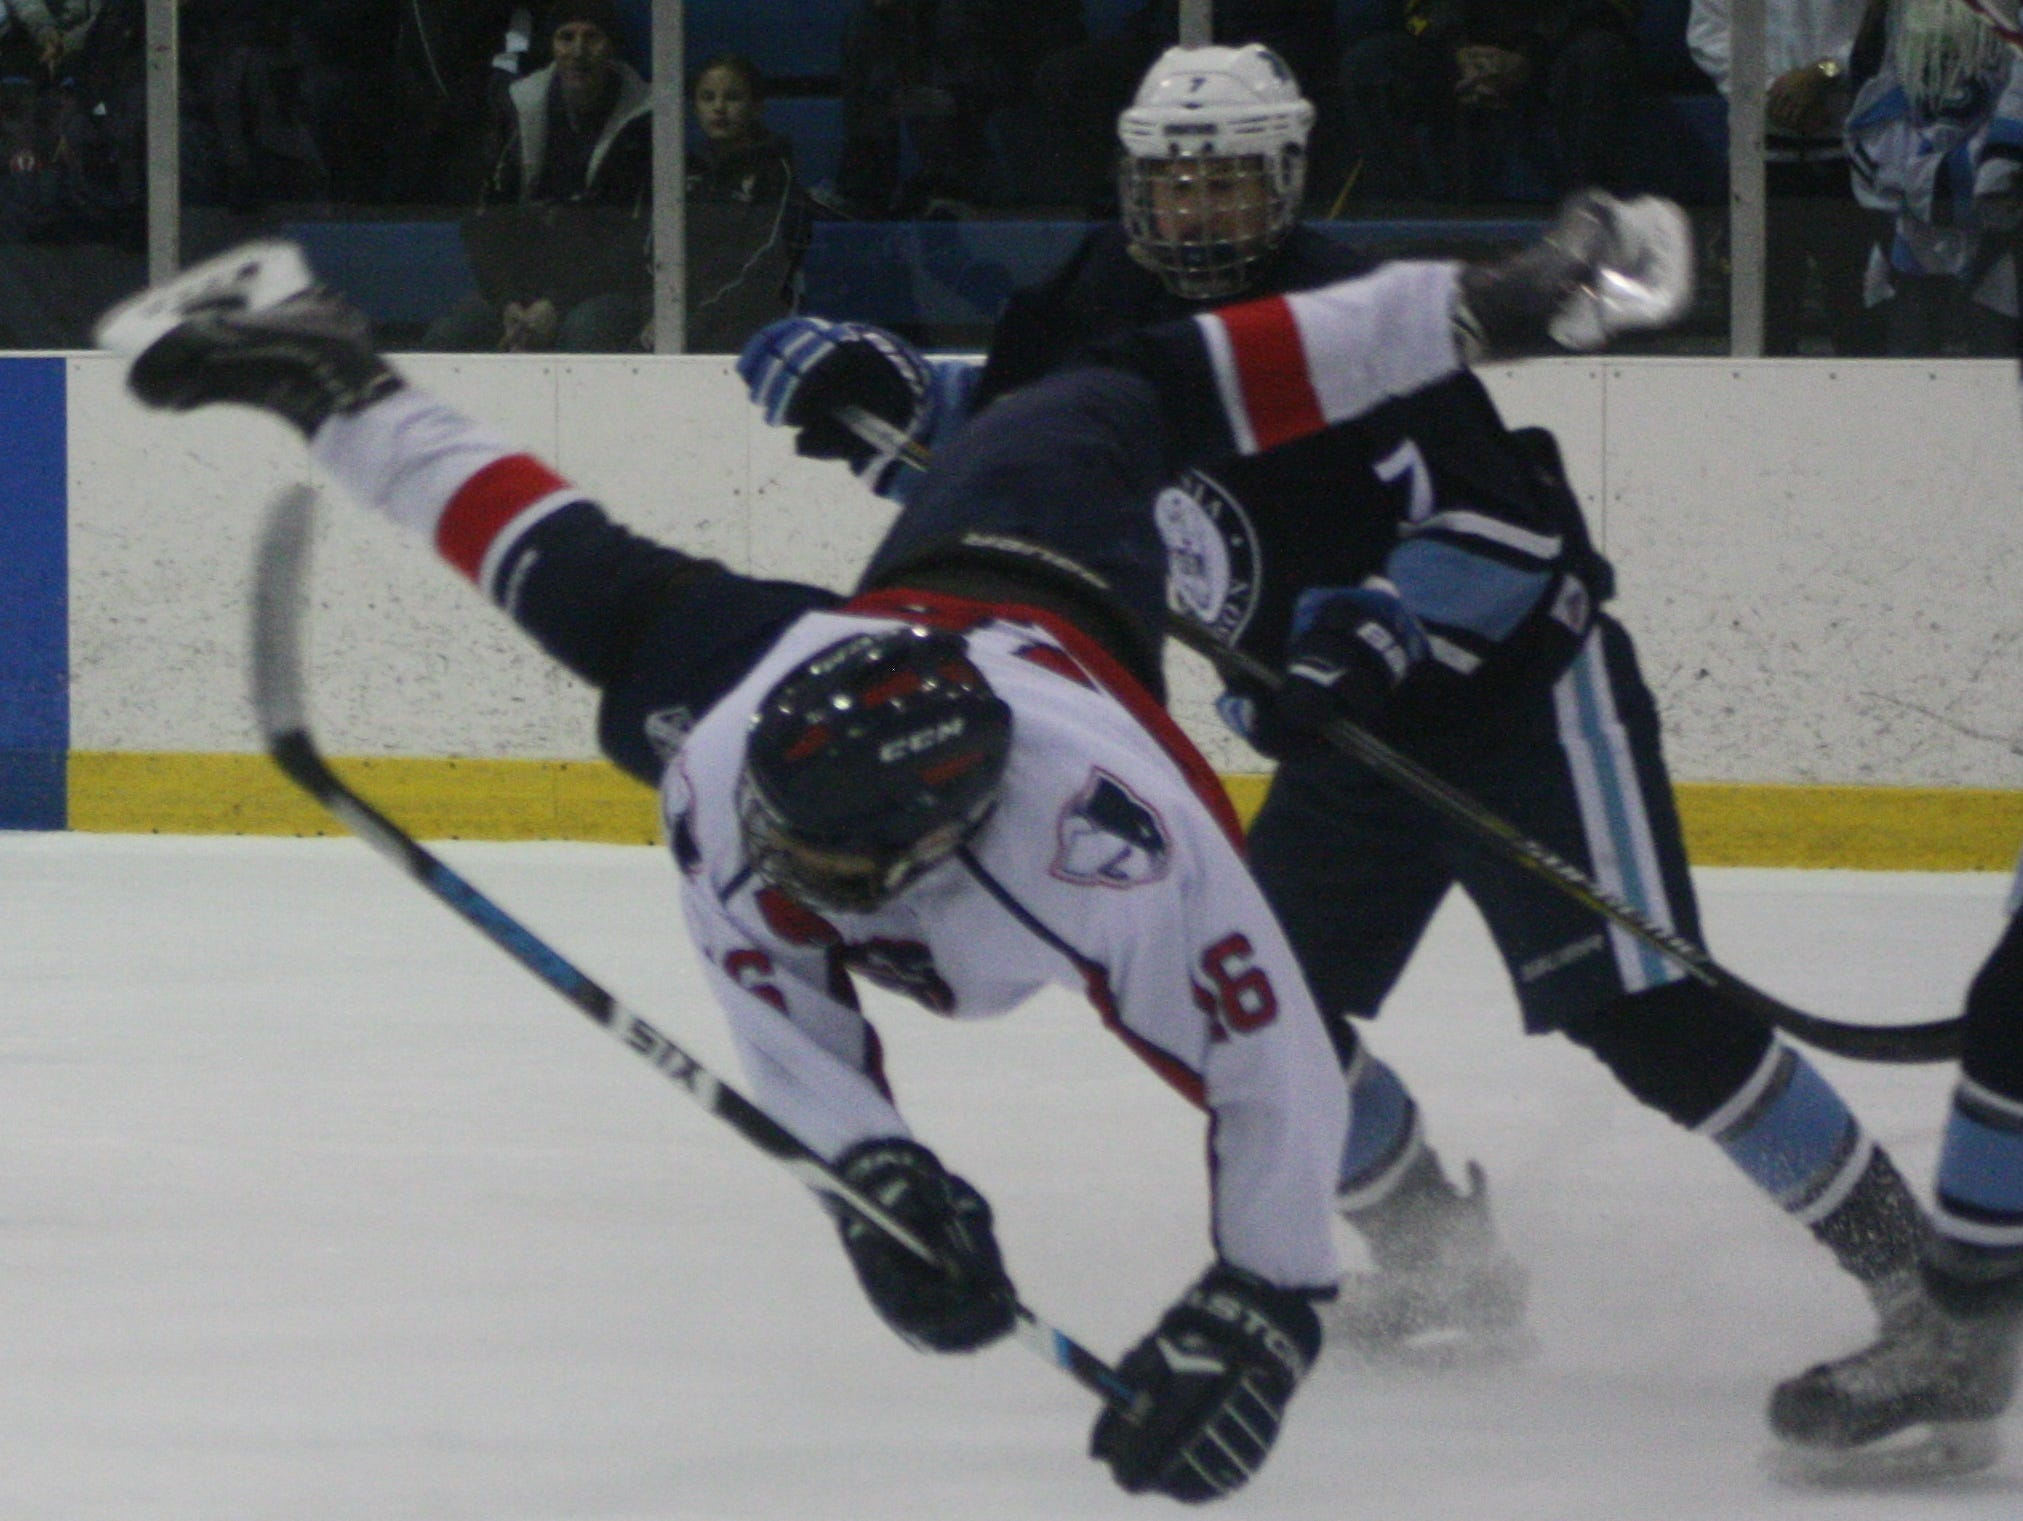 Livonia Franklin forward Chase Wallis gets upended following a first-period collision with Stevenson goalie Cullen Barber.